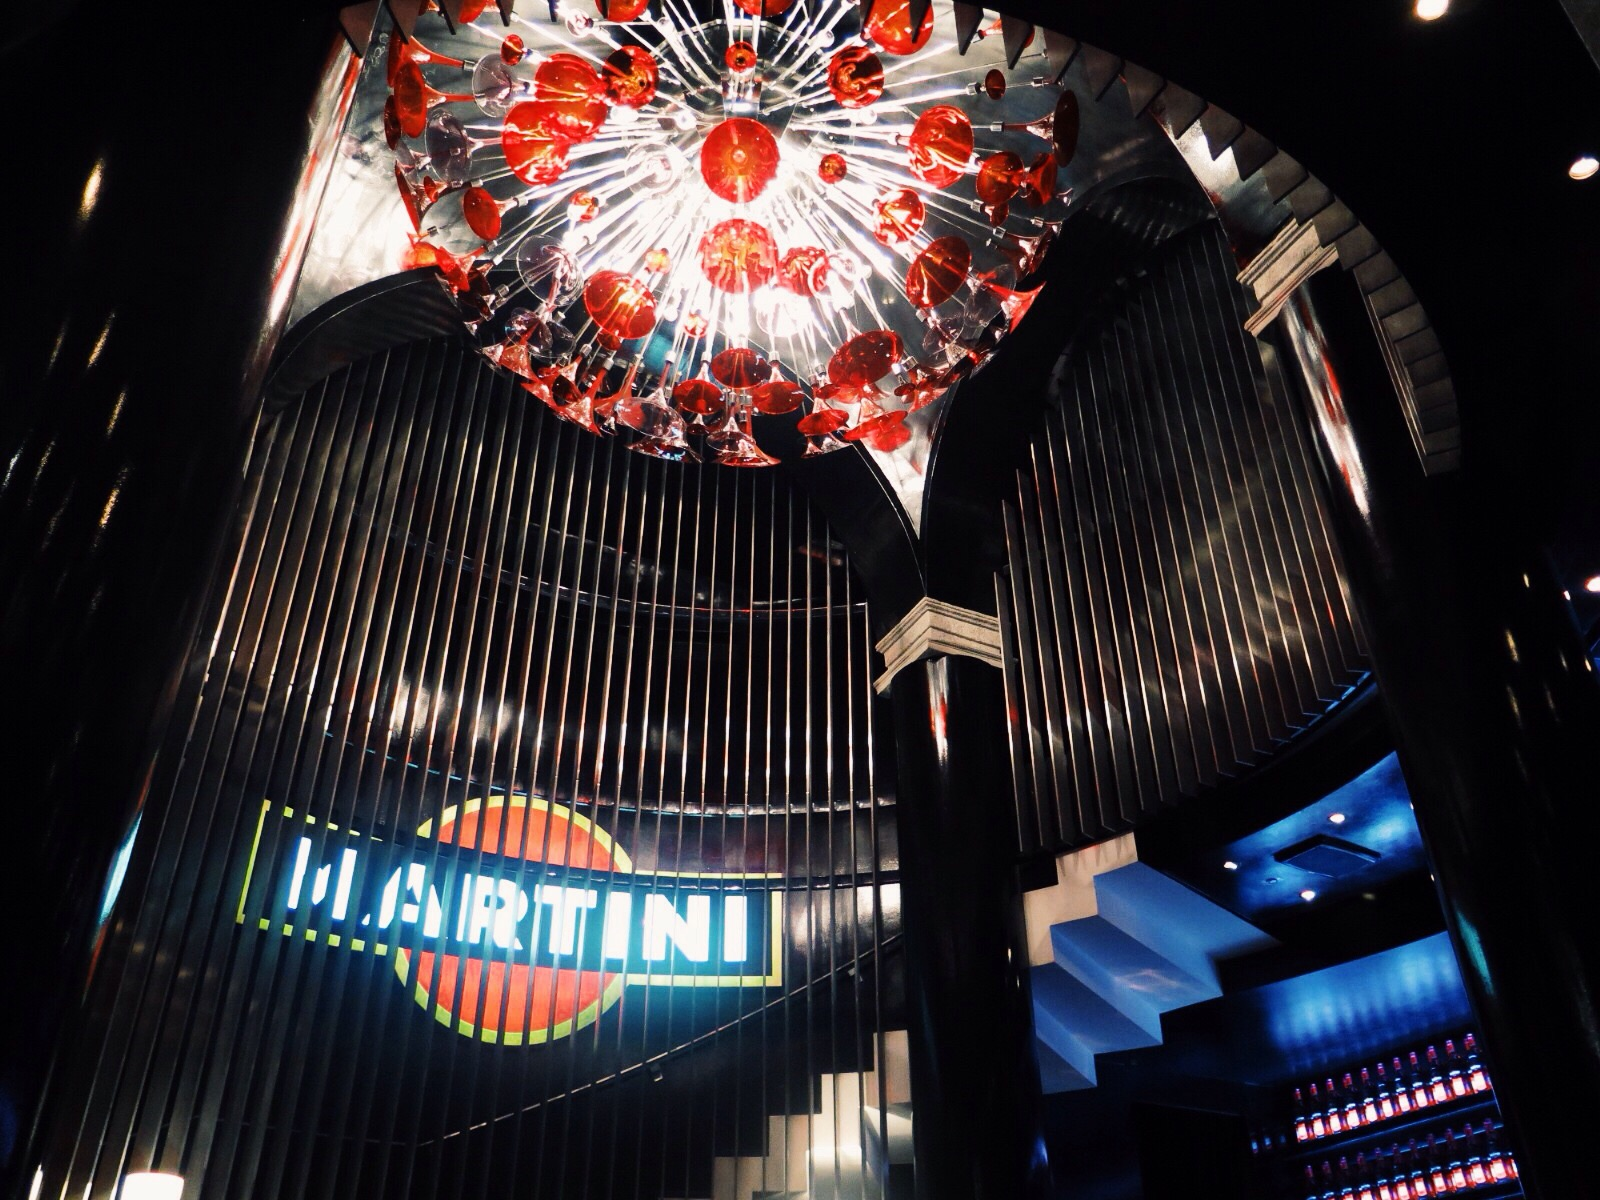 The winding staircase at the Dolce&Gabbana designed Martini Bar